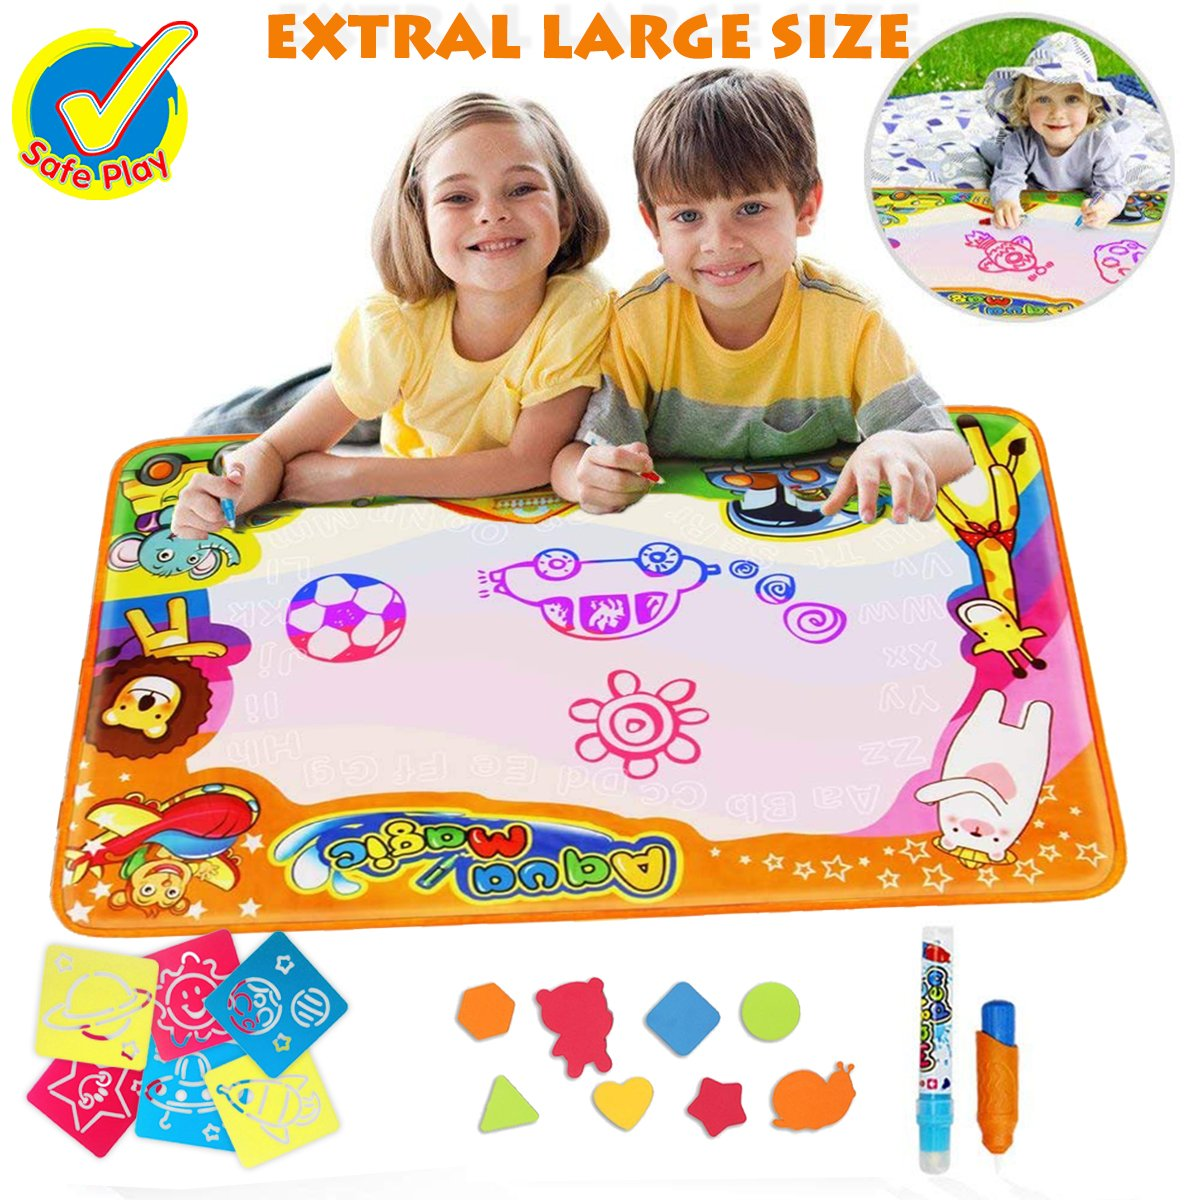 Water Doodle MatMagic Water DrawingMat 34.25 x 22.4 inchToddler ToysWater Drawing Pad Writing MatsKids Educational Travel Toy Gift for Boys Girls Toddlers Age 2 3 4 5, 6 Colors